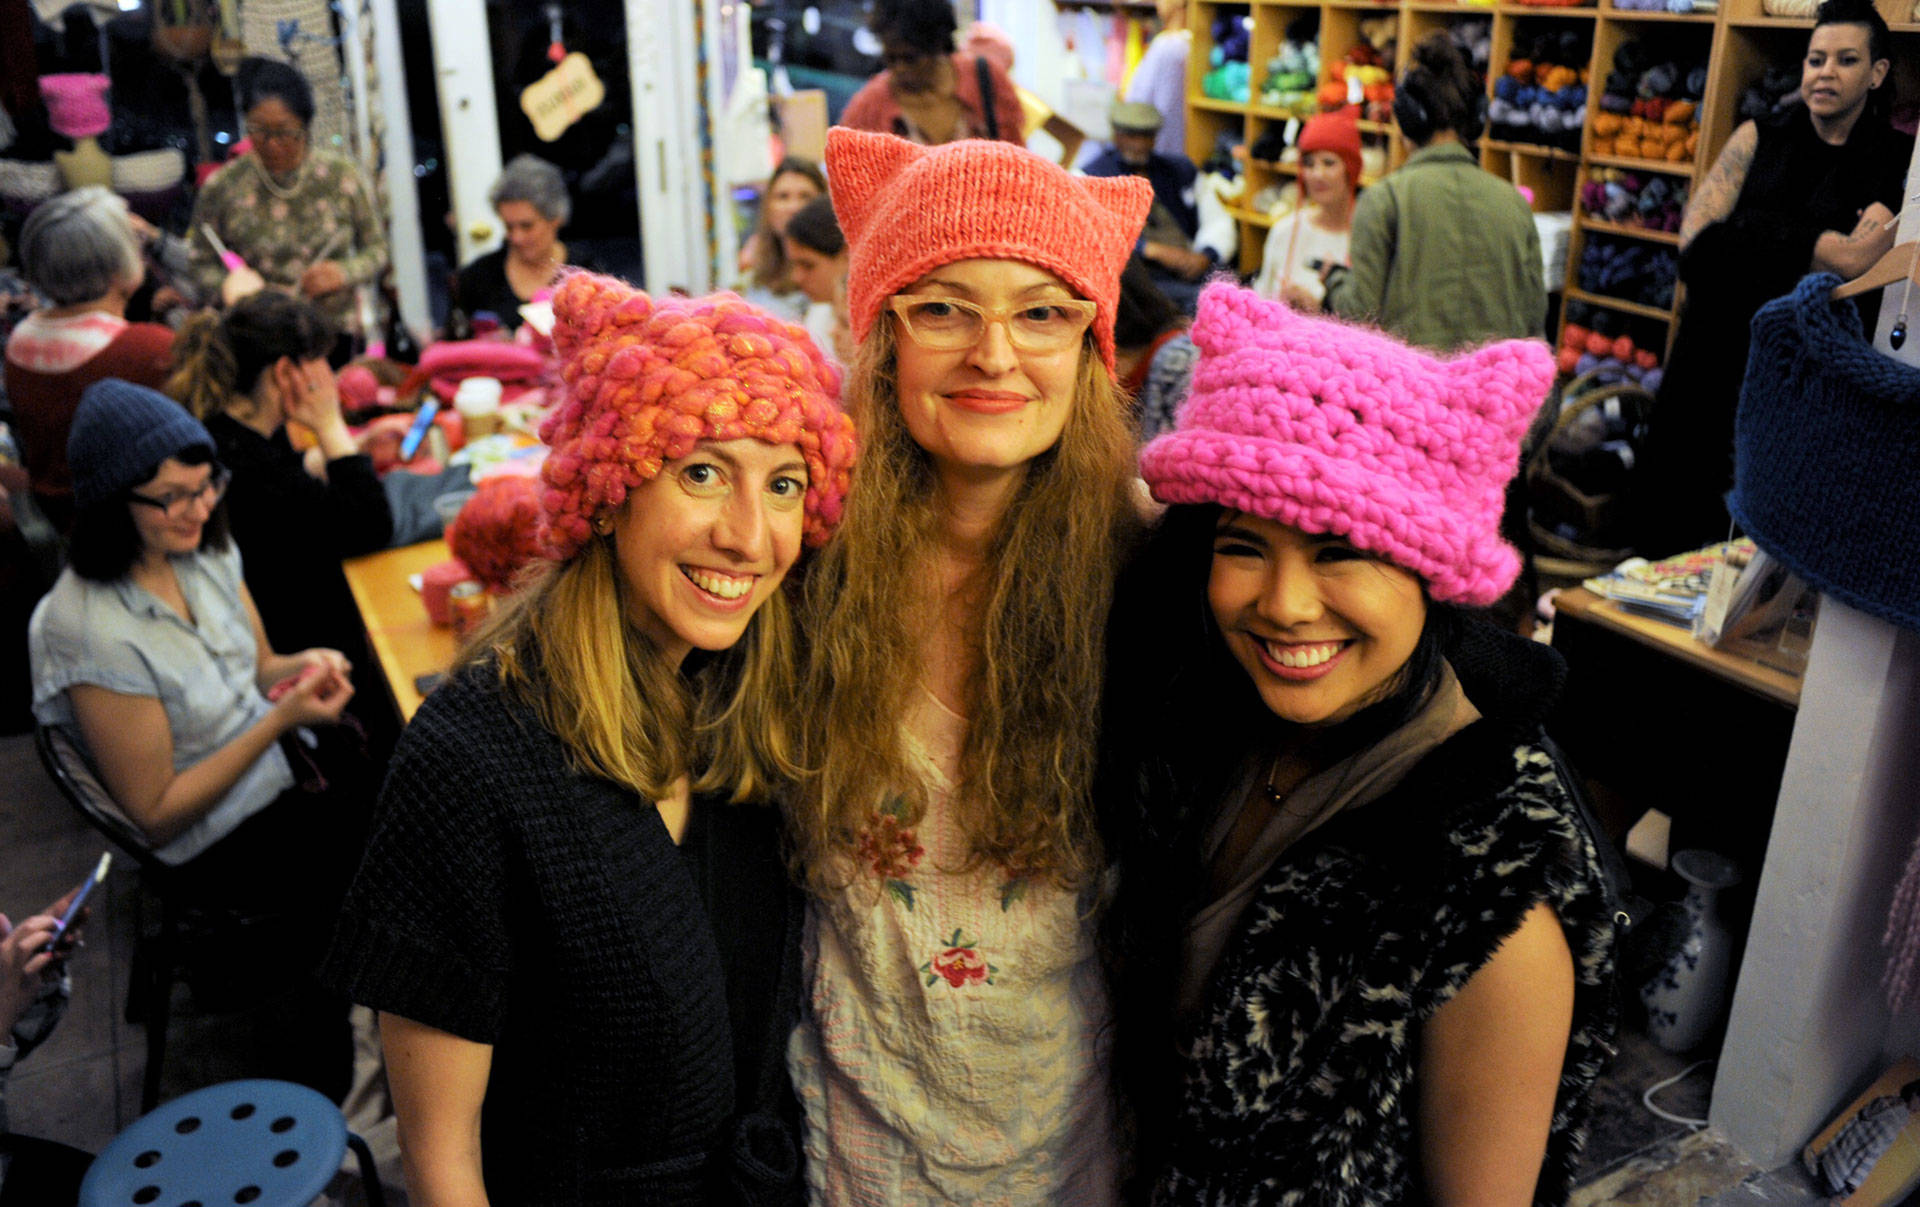 Pussyhat Project co-founder Jayna Zweiman (L), The Little Knittery owner Kat Coyle (C), and Pussyhat Project co-founder Krista Suh (R) at The Little Knittery in Los Angeles. Blair Wells/KQED